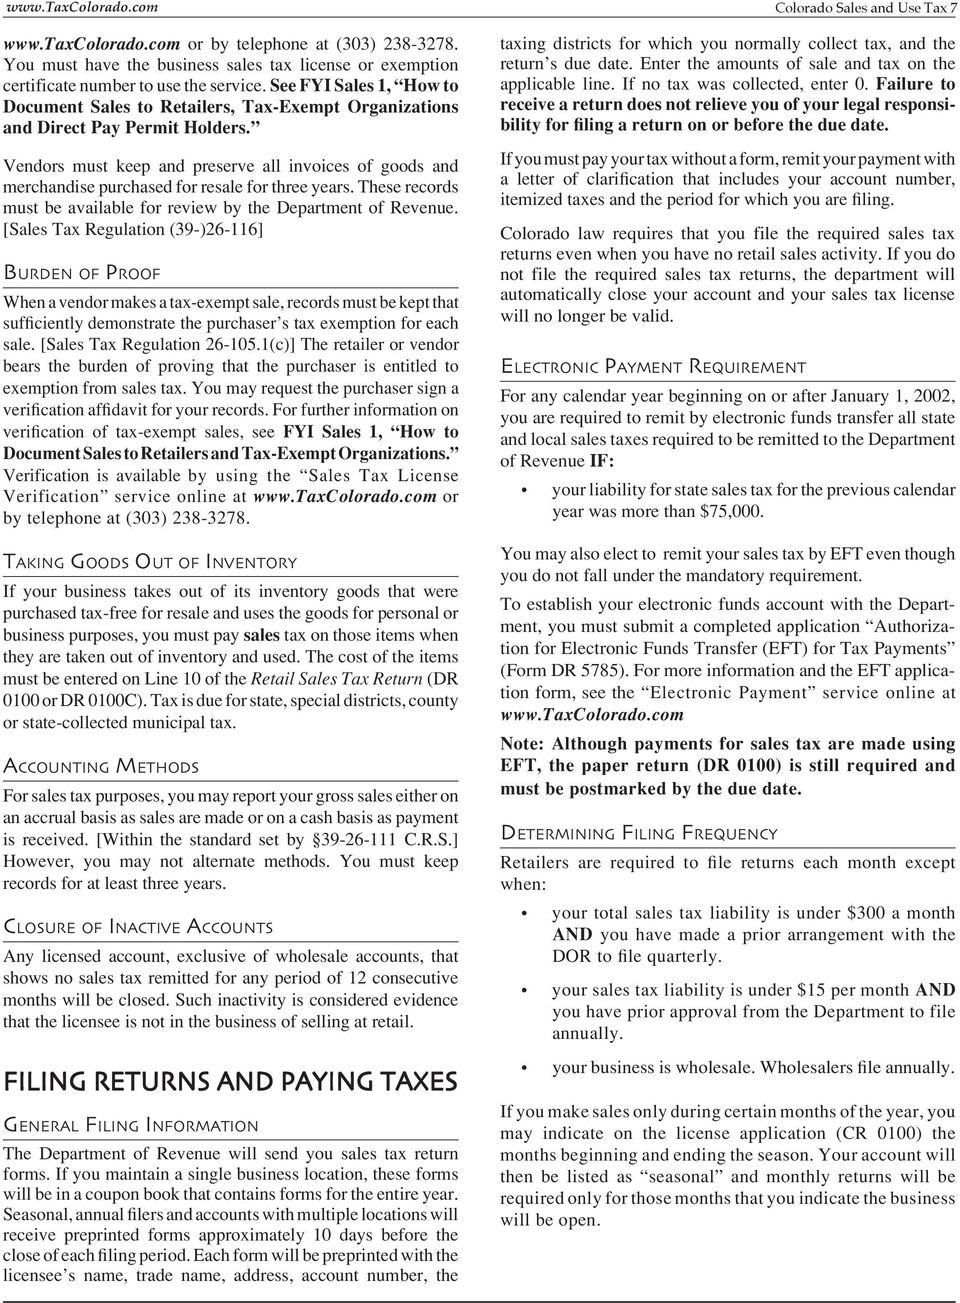 C Olorado Sales And Use Tax General Information And Reference Guide